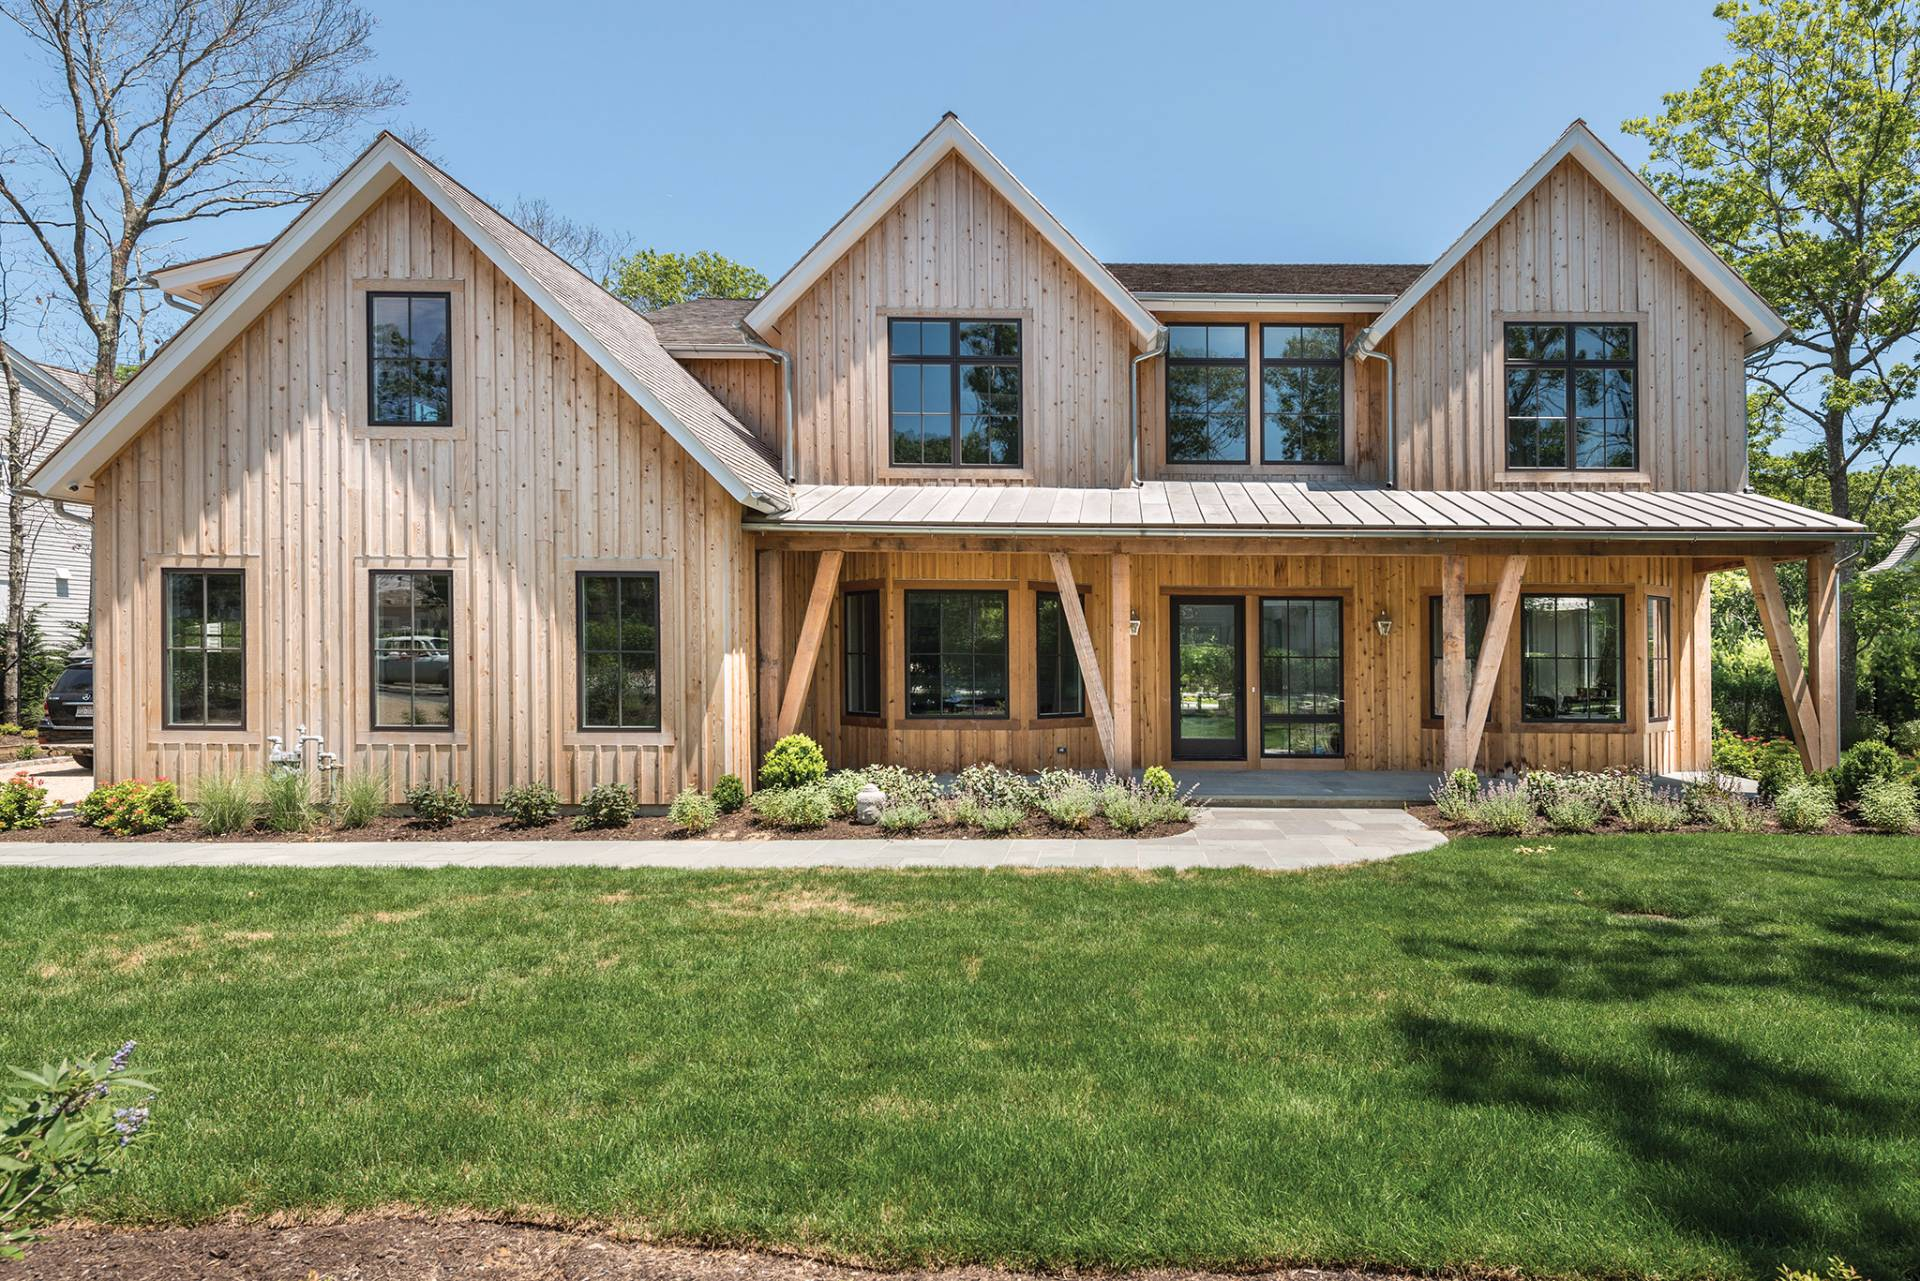 Single Family Home for Sale at The Tuscany Barn. 21st Century Design. Barn & Vine Bridgehampton 23 Barn Lane, (Lot 35, Tuscany Barn), Bridgehampton, New York